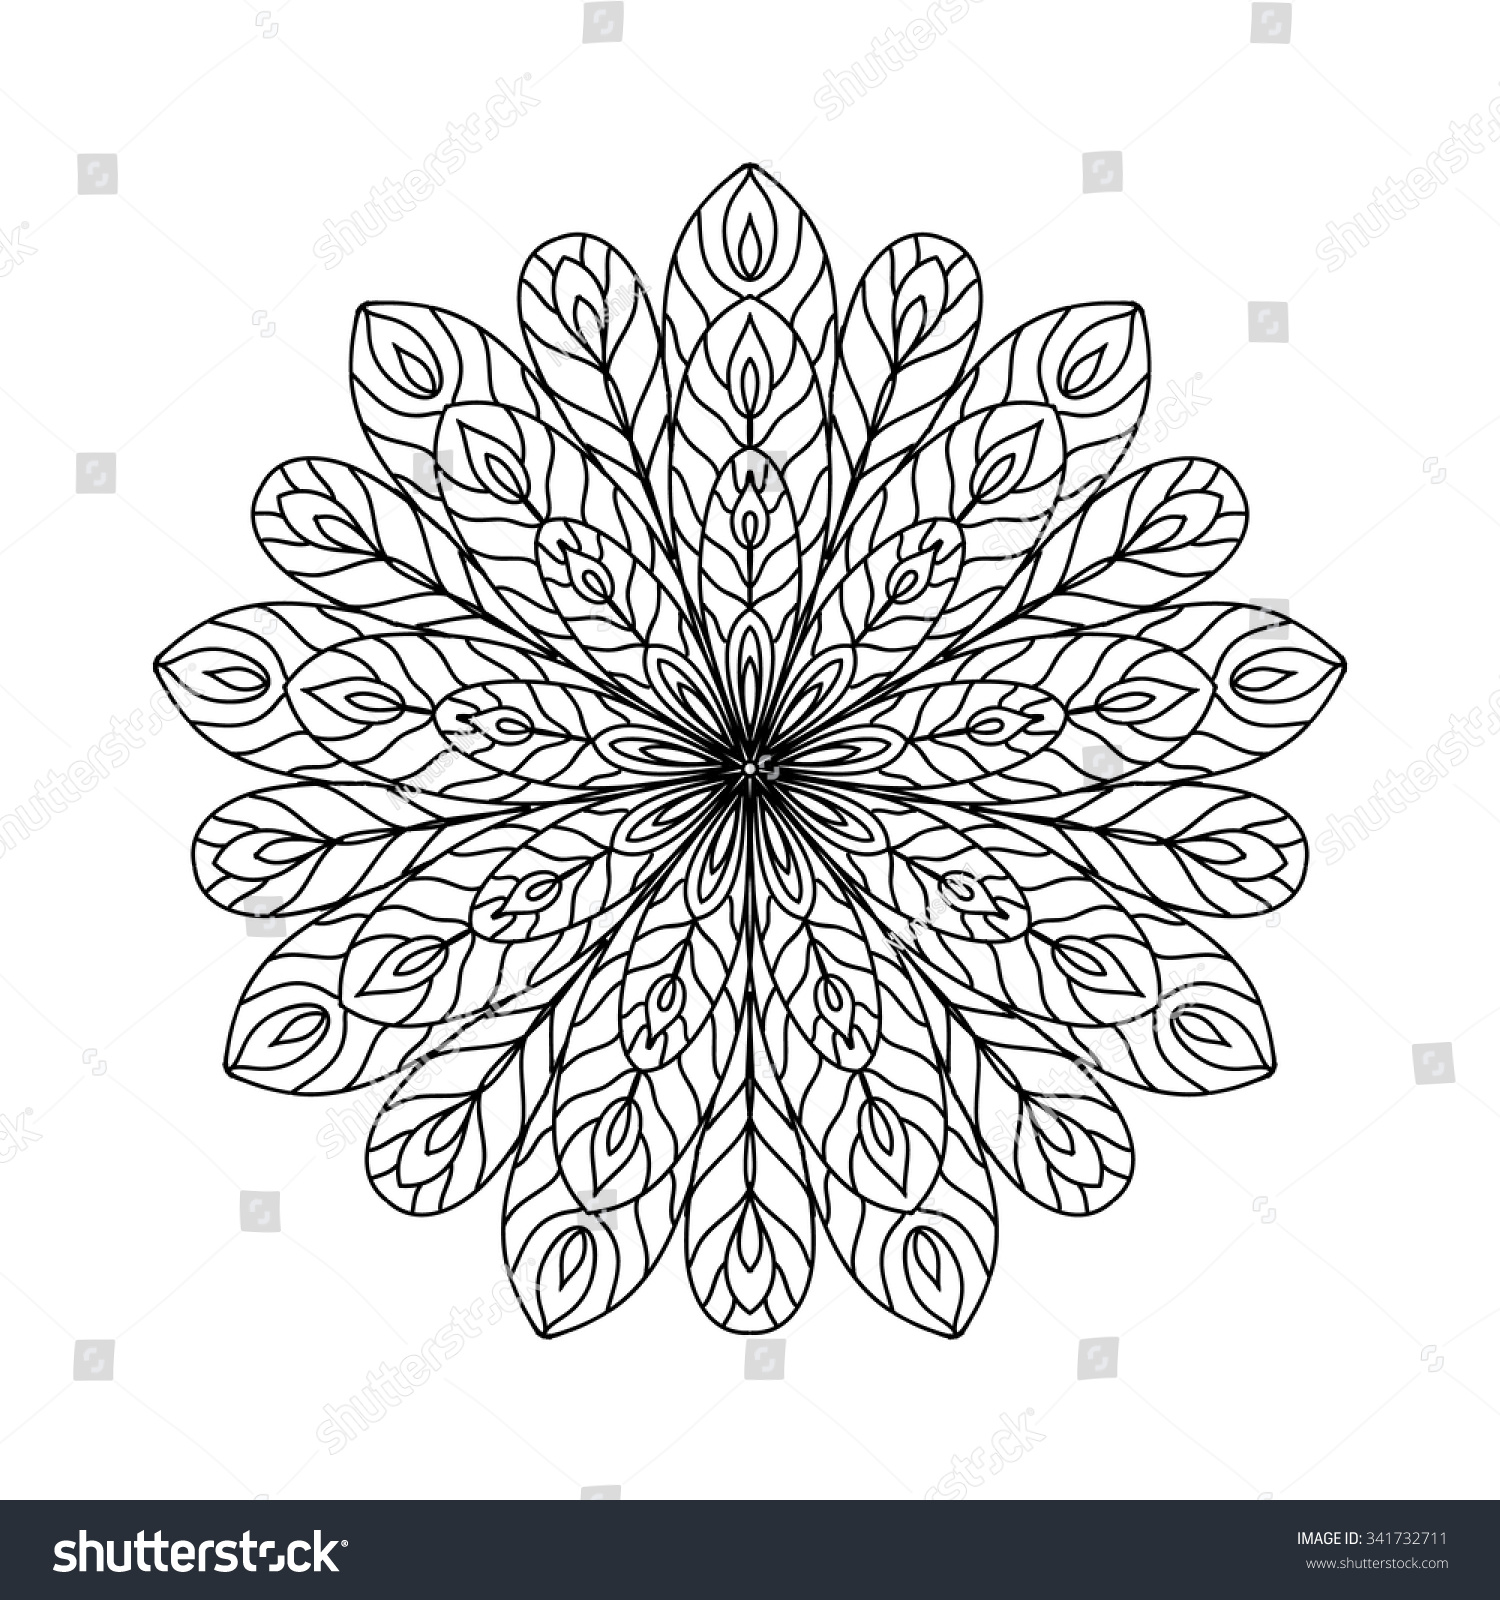 Abstract Zentangle Coloring Page Stock Vector Shutterstock